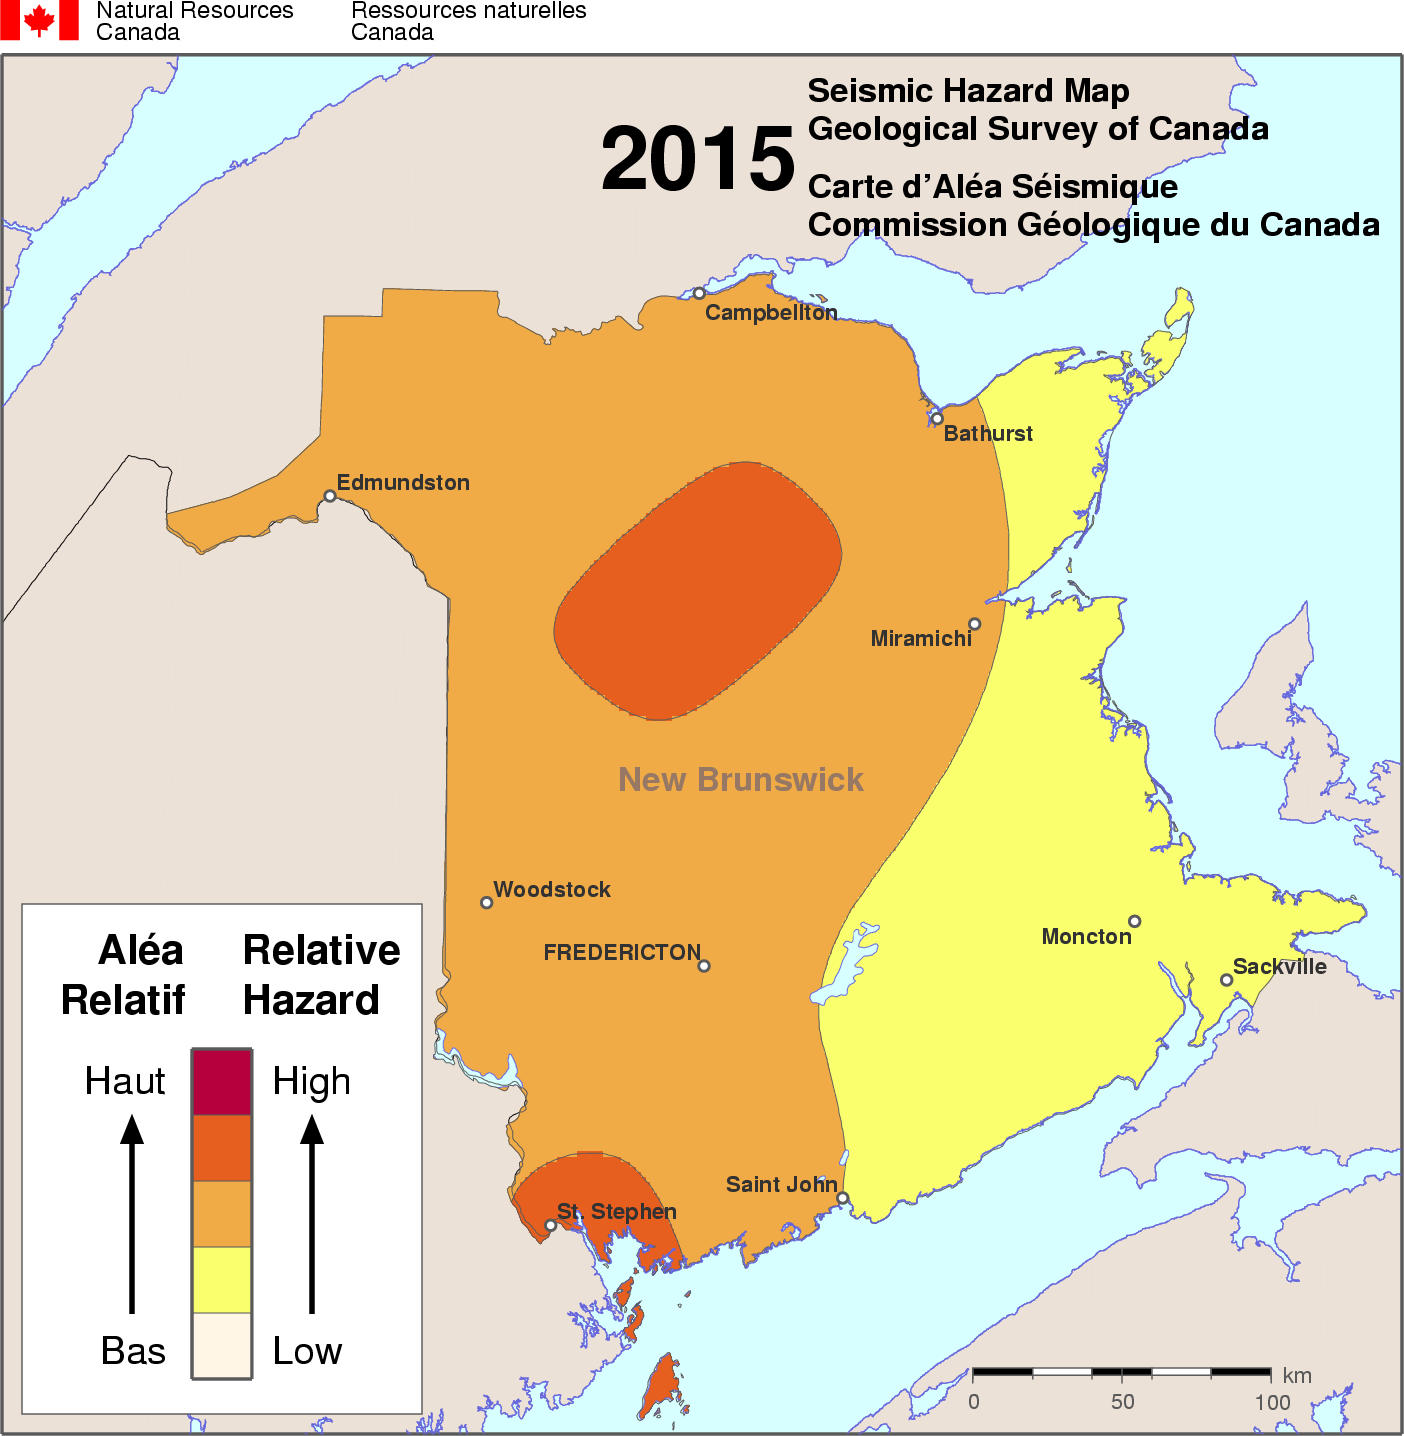 Map Of Canada New Brunswick.Simplified Seismic Hazard Map For Canada The Provinces And Territories